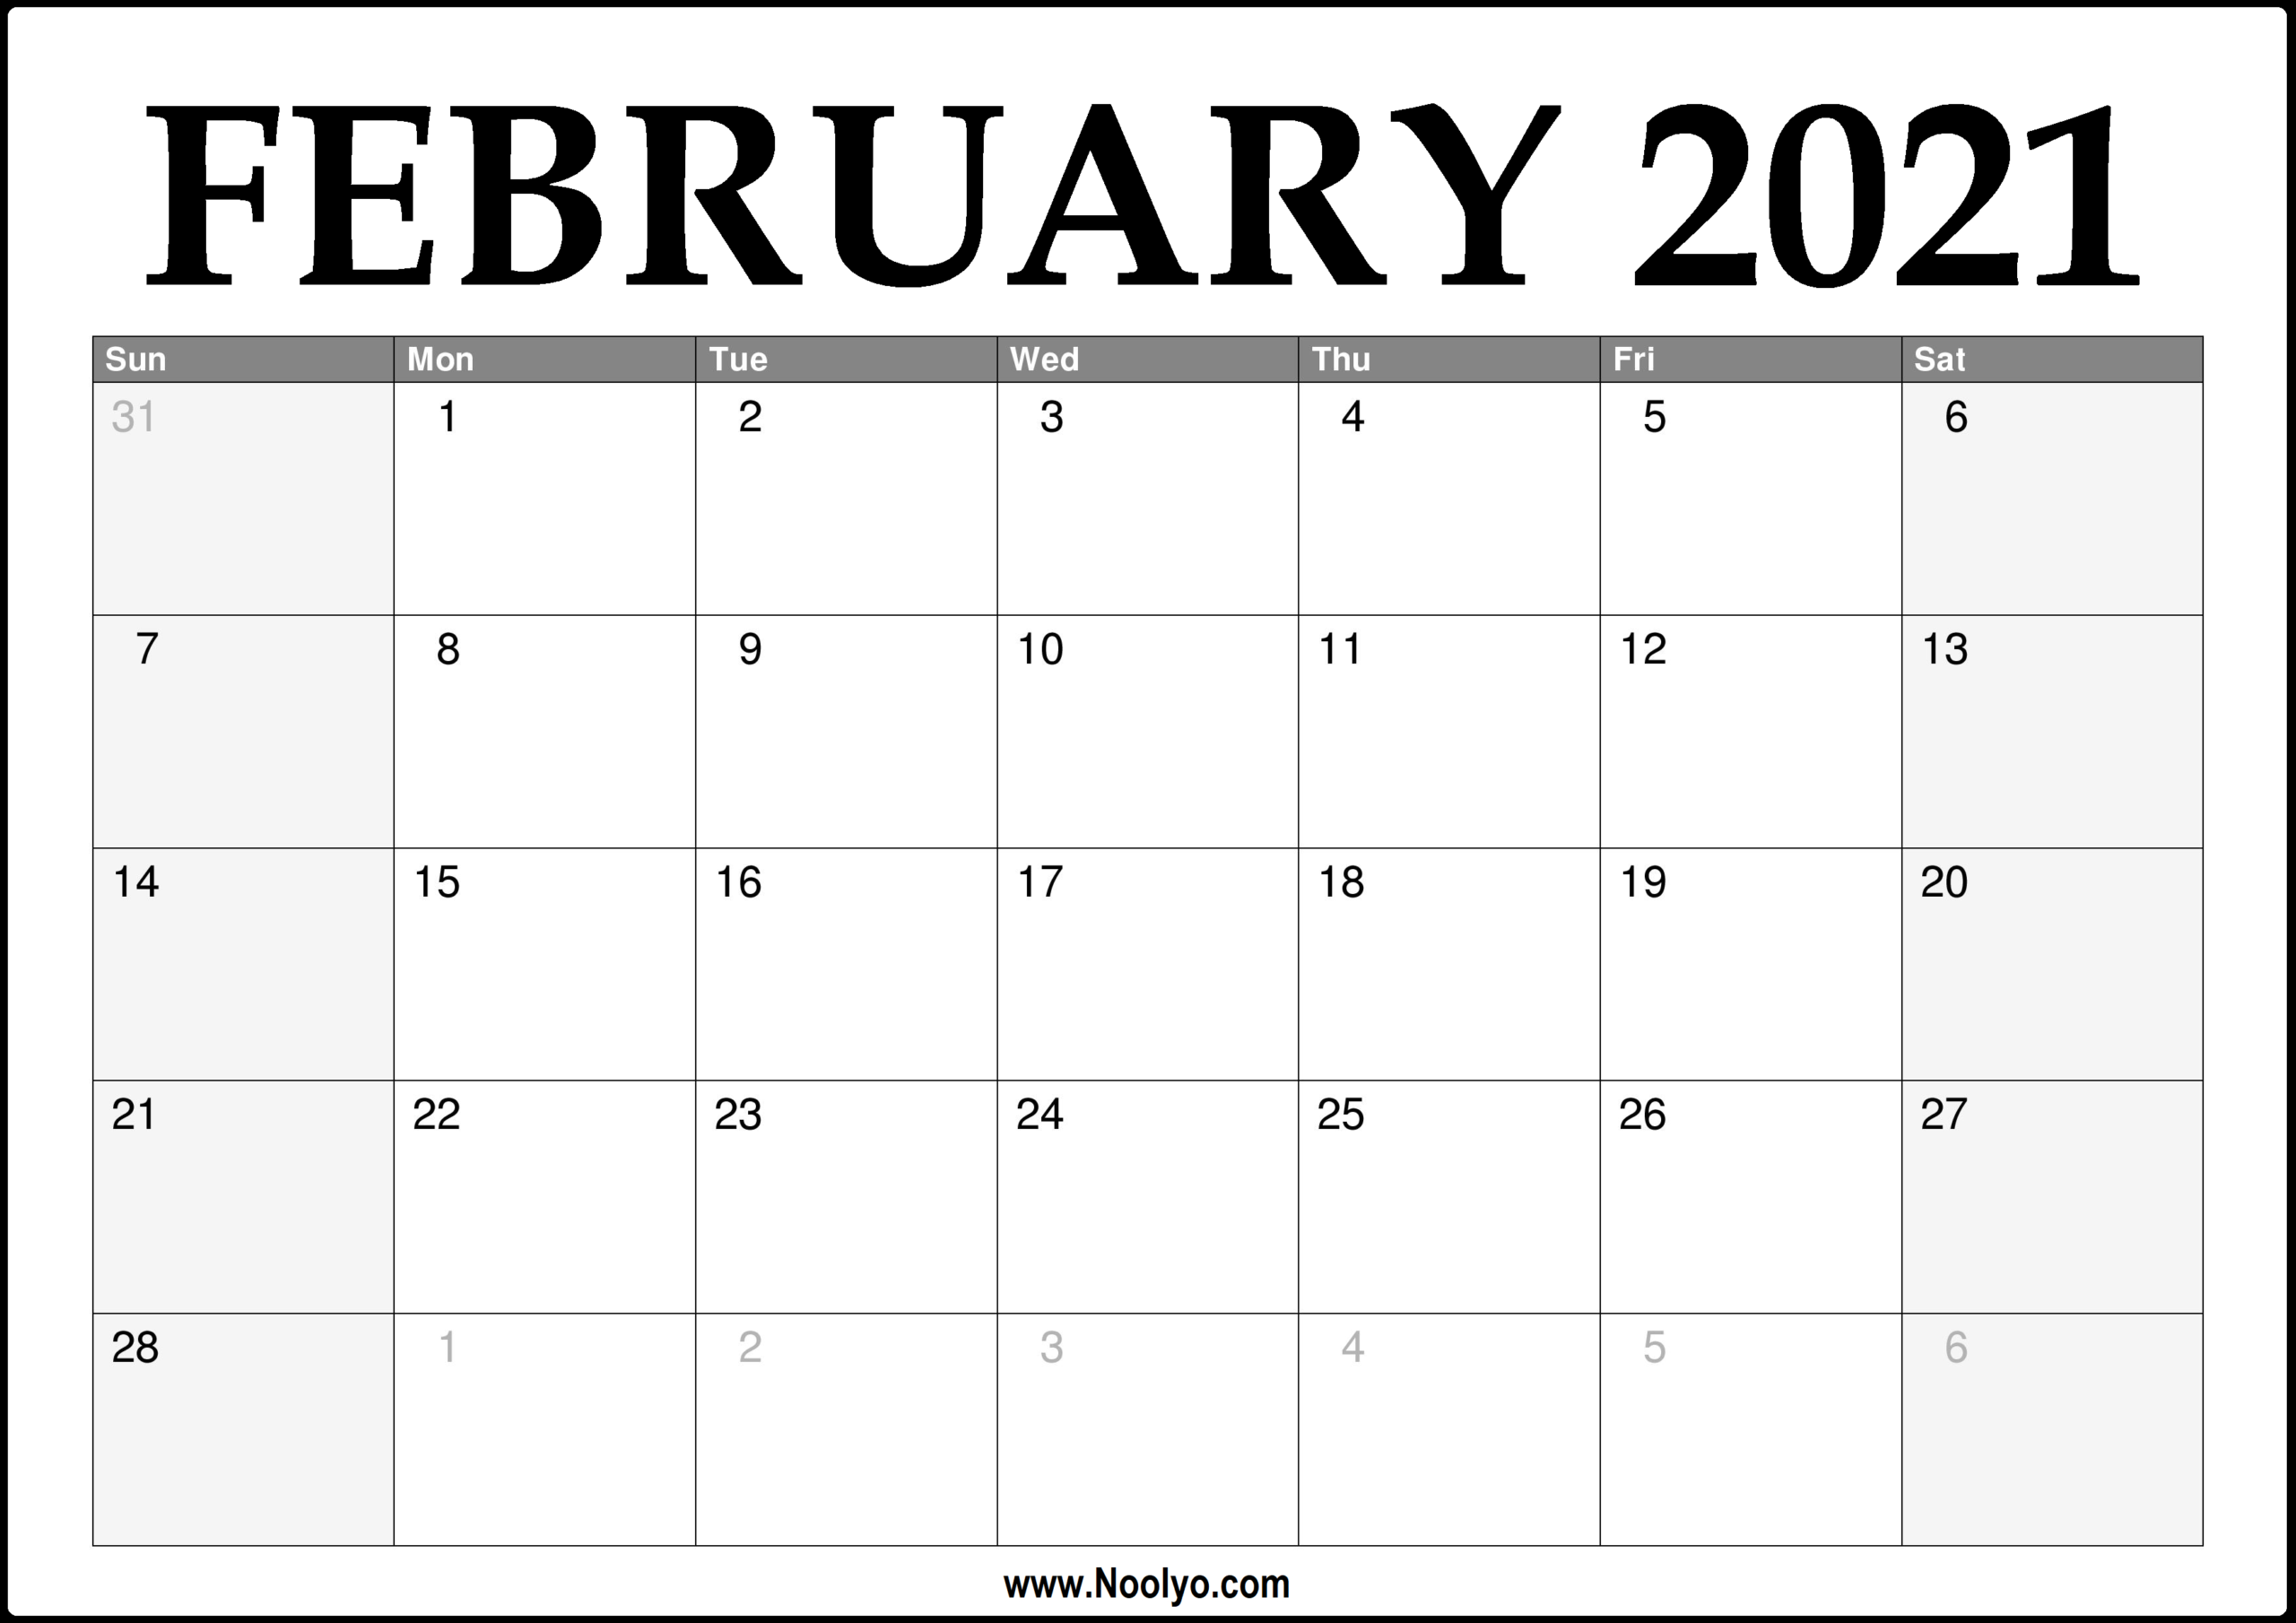 2021 February Calendar Printable – Download Free – Noolyo